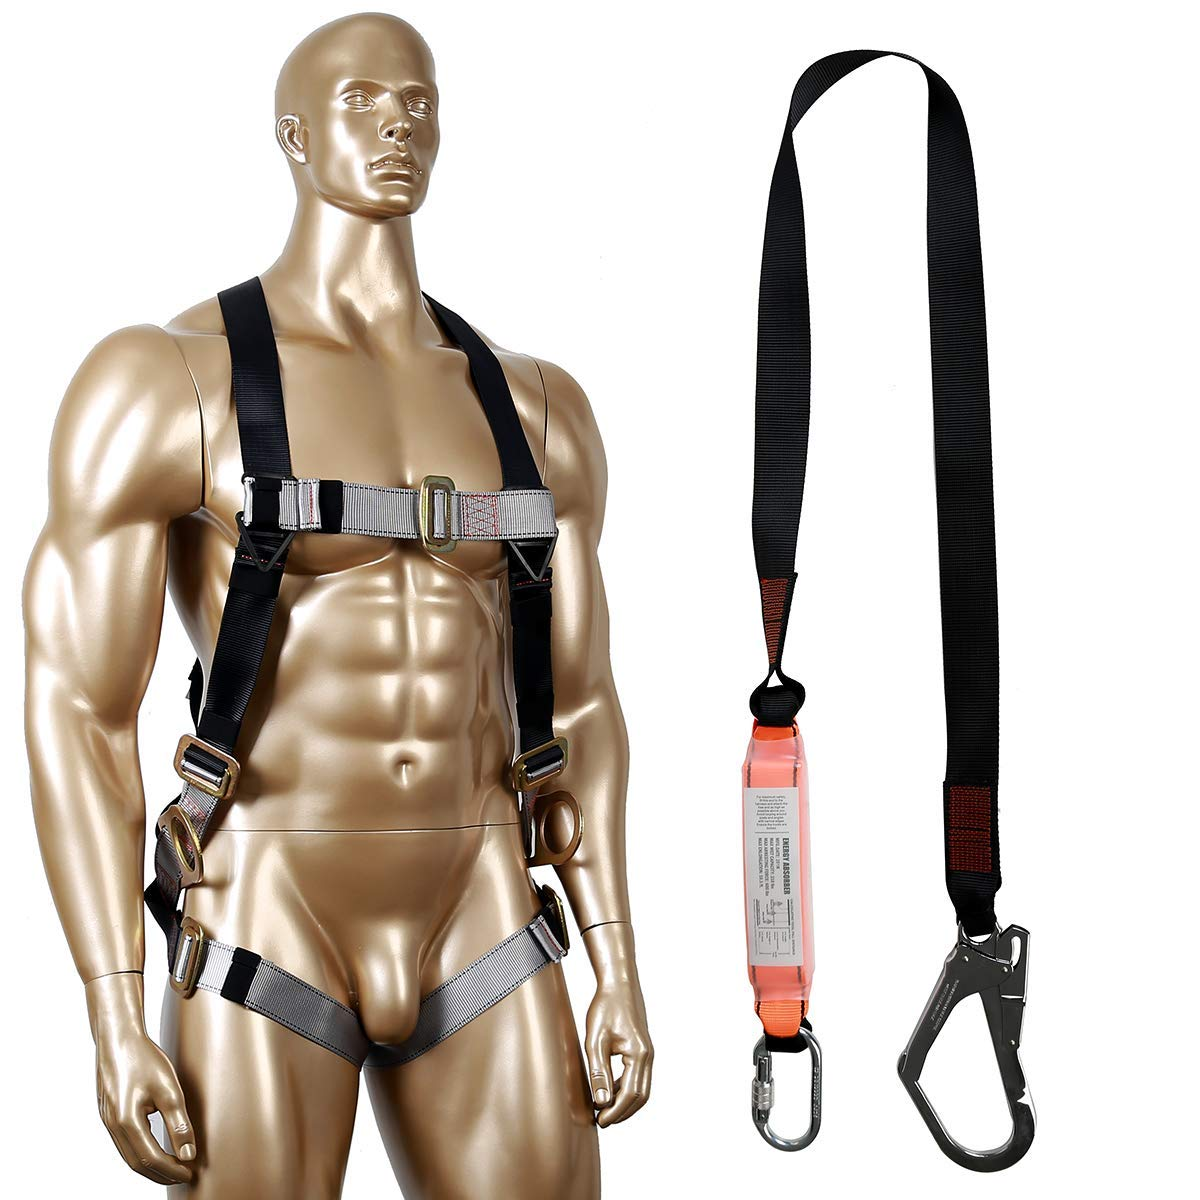 KSEIBI 421026A Full Body Fall Protection Light Weight Safety Harness w 3 D-Ring and Chest Pass Thru Buckles including Single Leg Snap Hook and Scaffolding Hook w 6-Foot Internal Shock Lanyard (Single) by KSEIBI